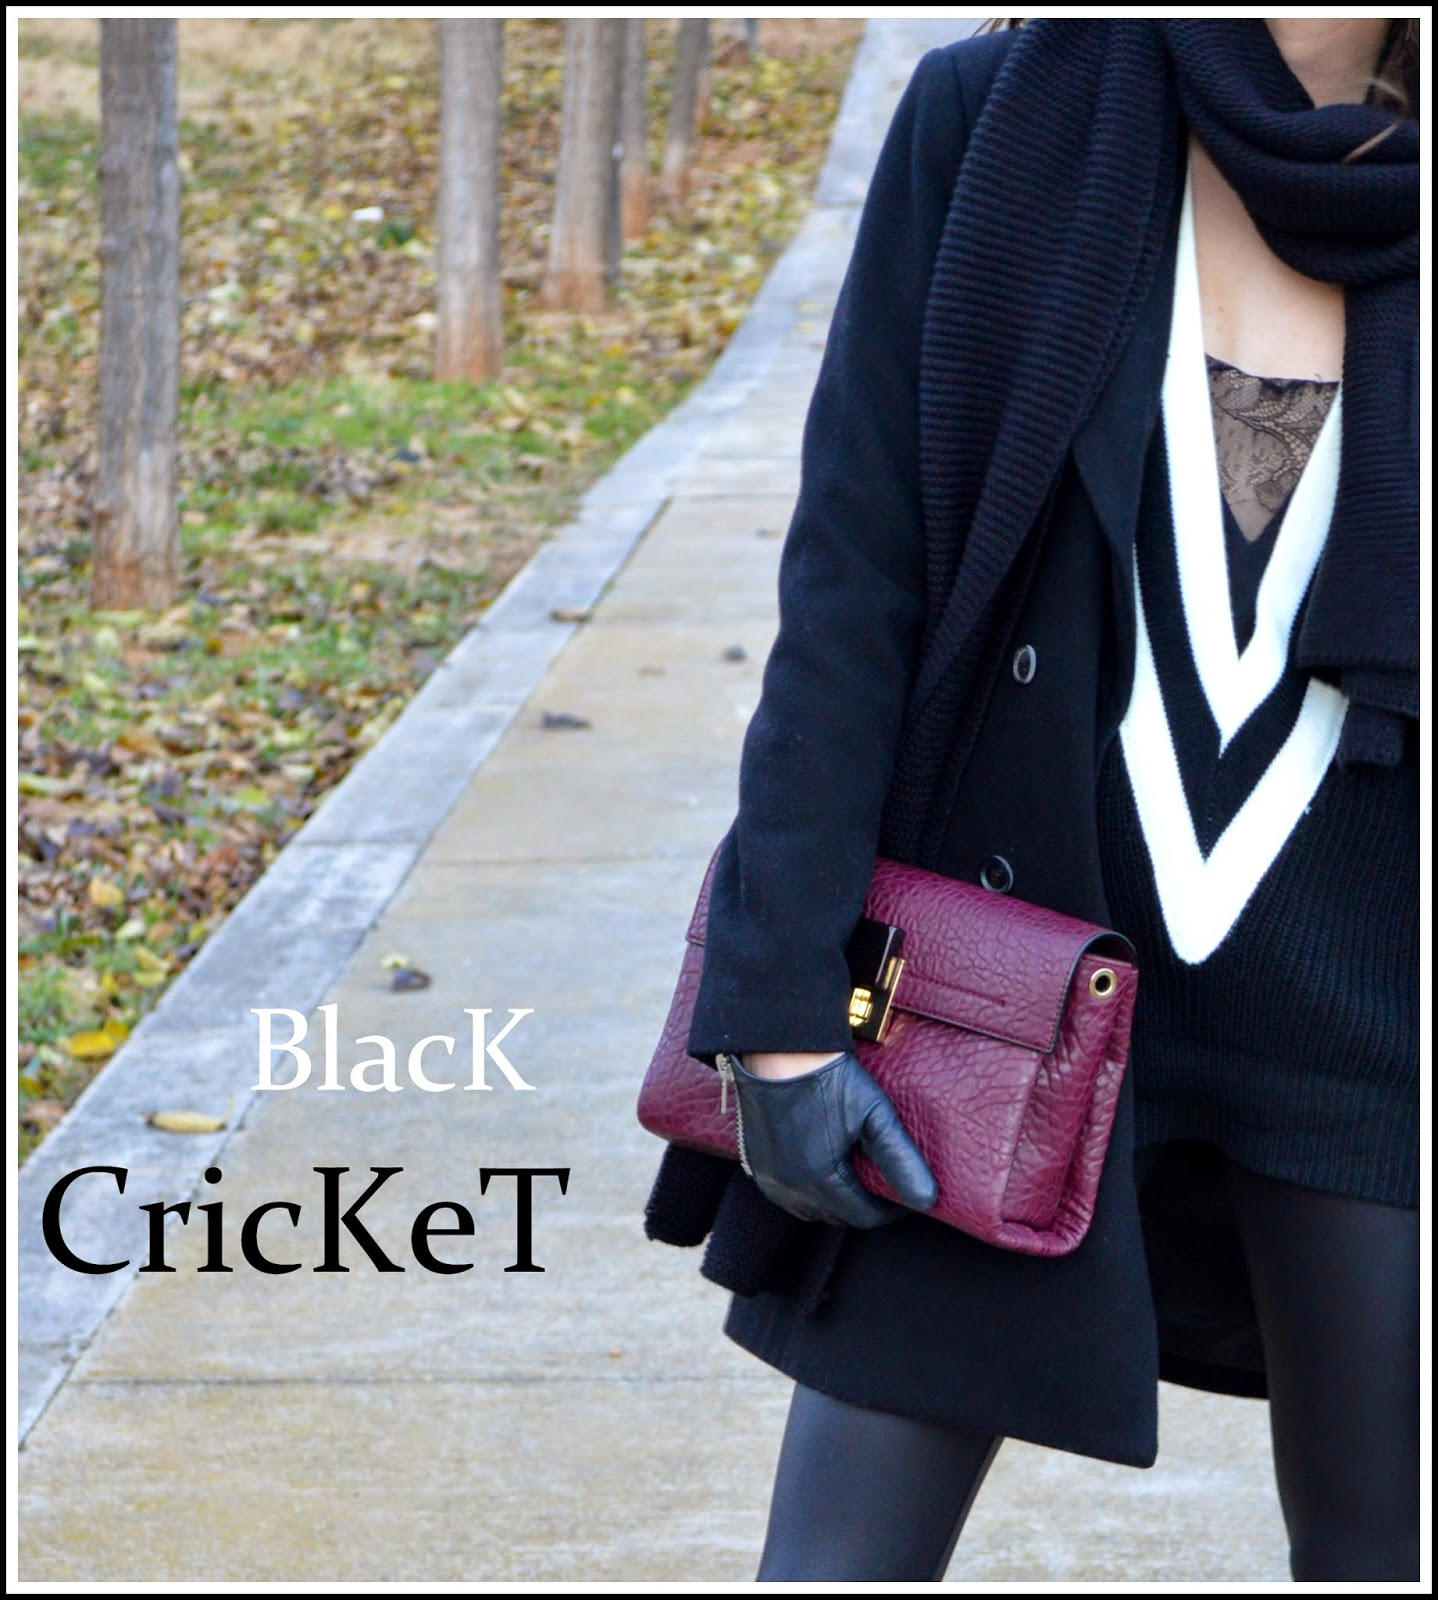 http://lookfortime.blogspot.com.es/2015/01/black-cricket.html